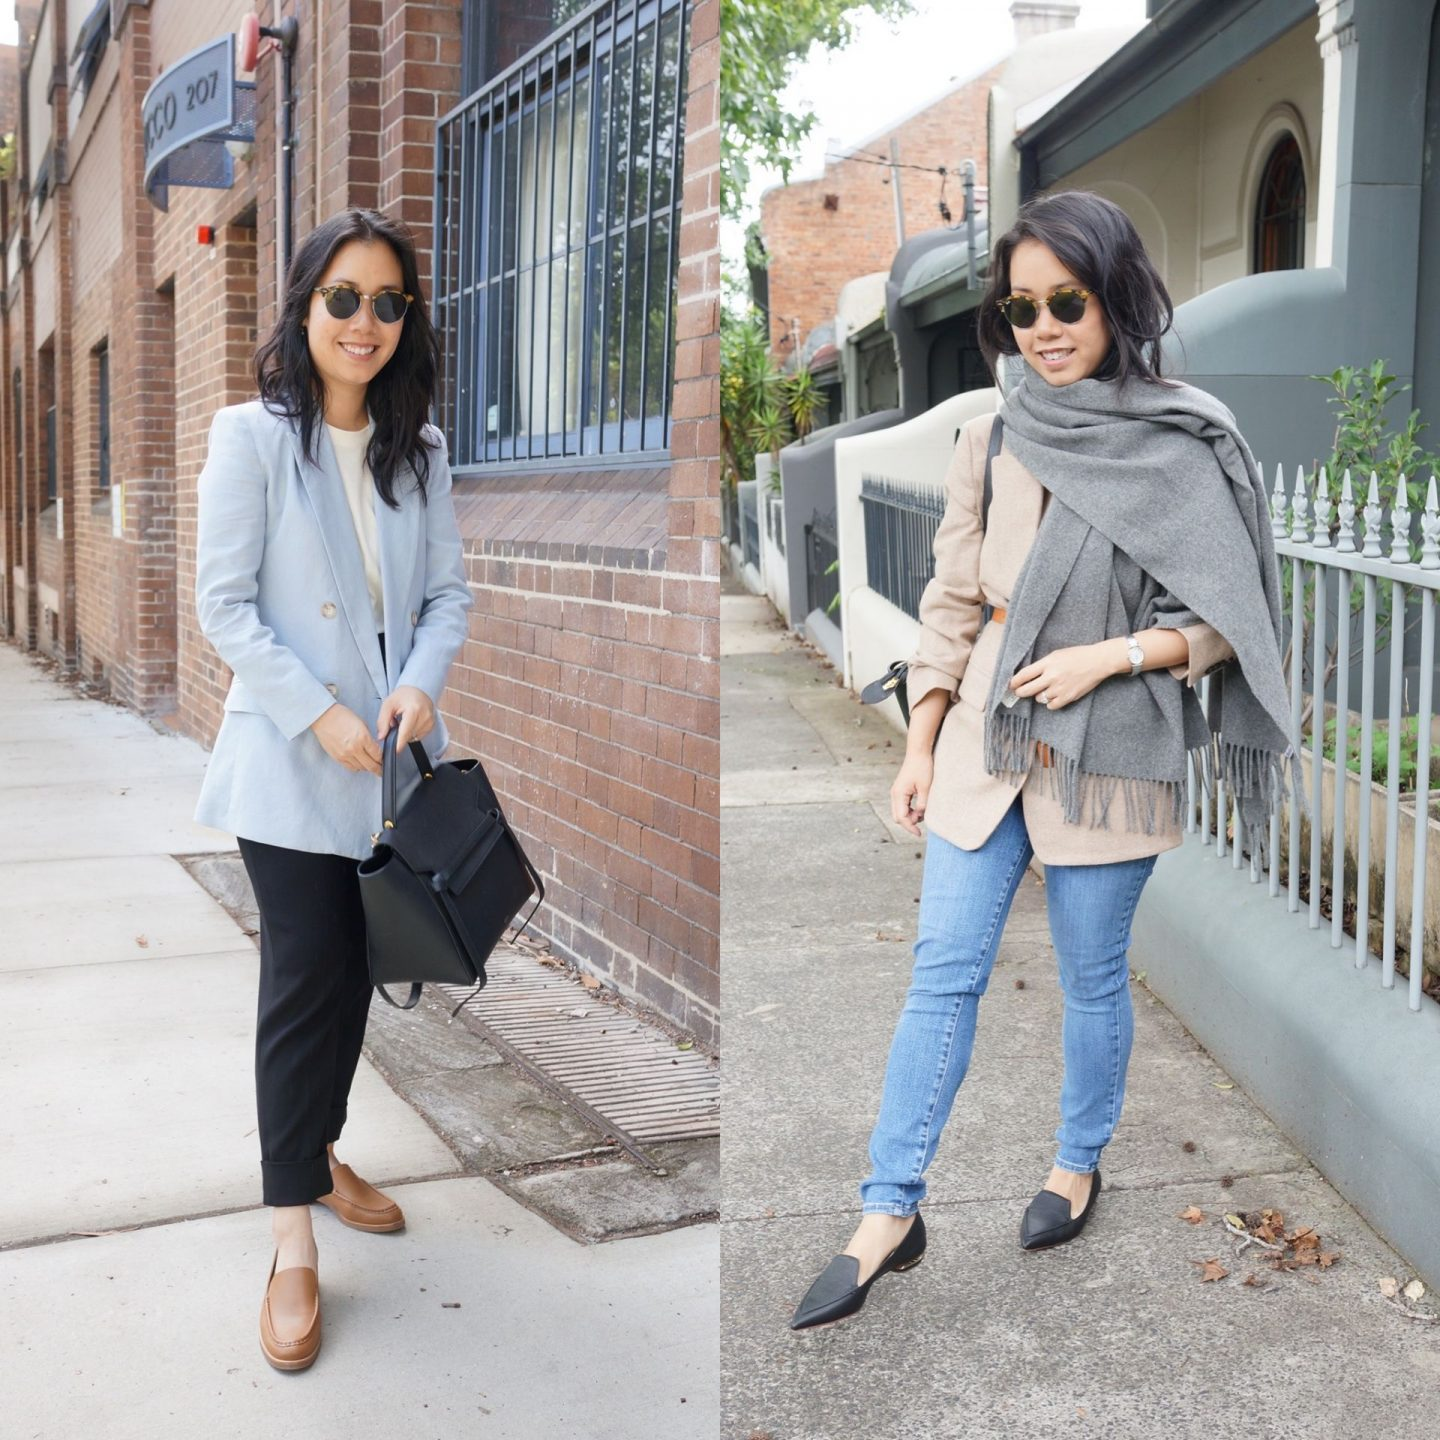 power dressing outfits and inspiration featuring blazer and jeans for casual friday